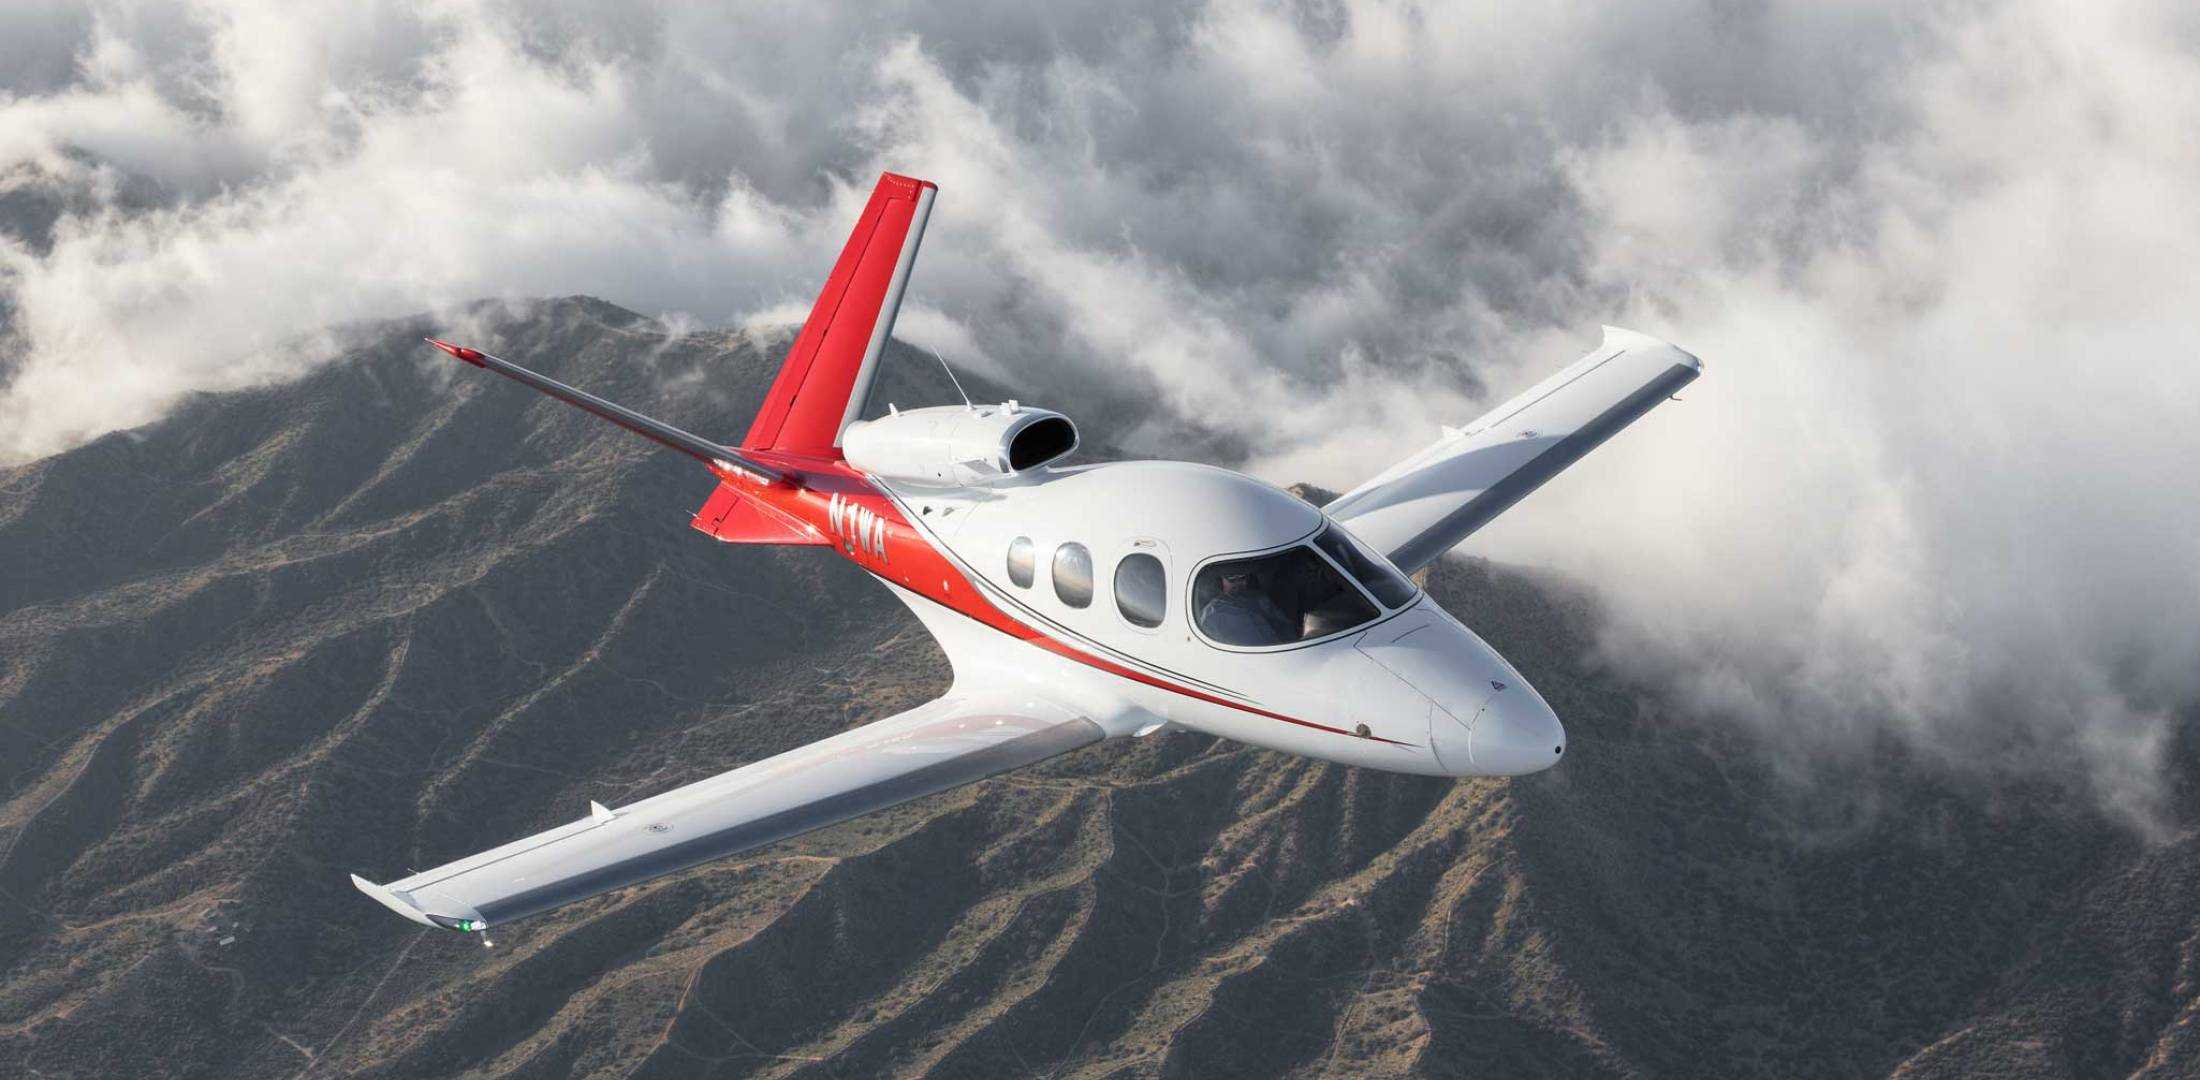 Vision Jet Makes First Appearance at LABACE | General